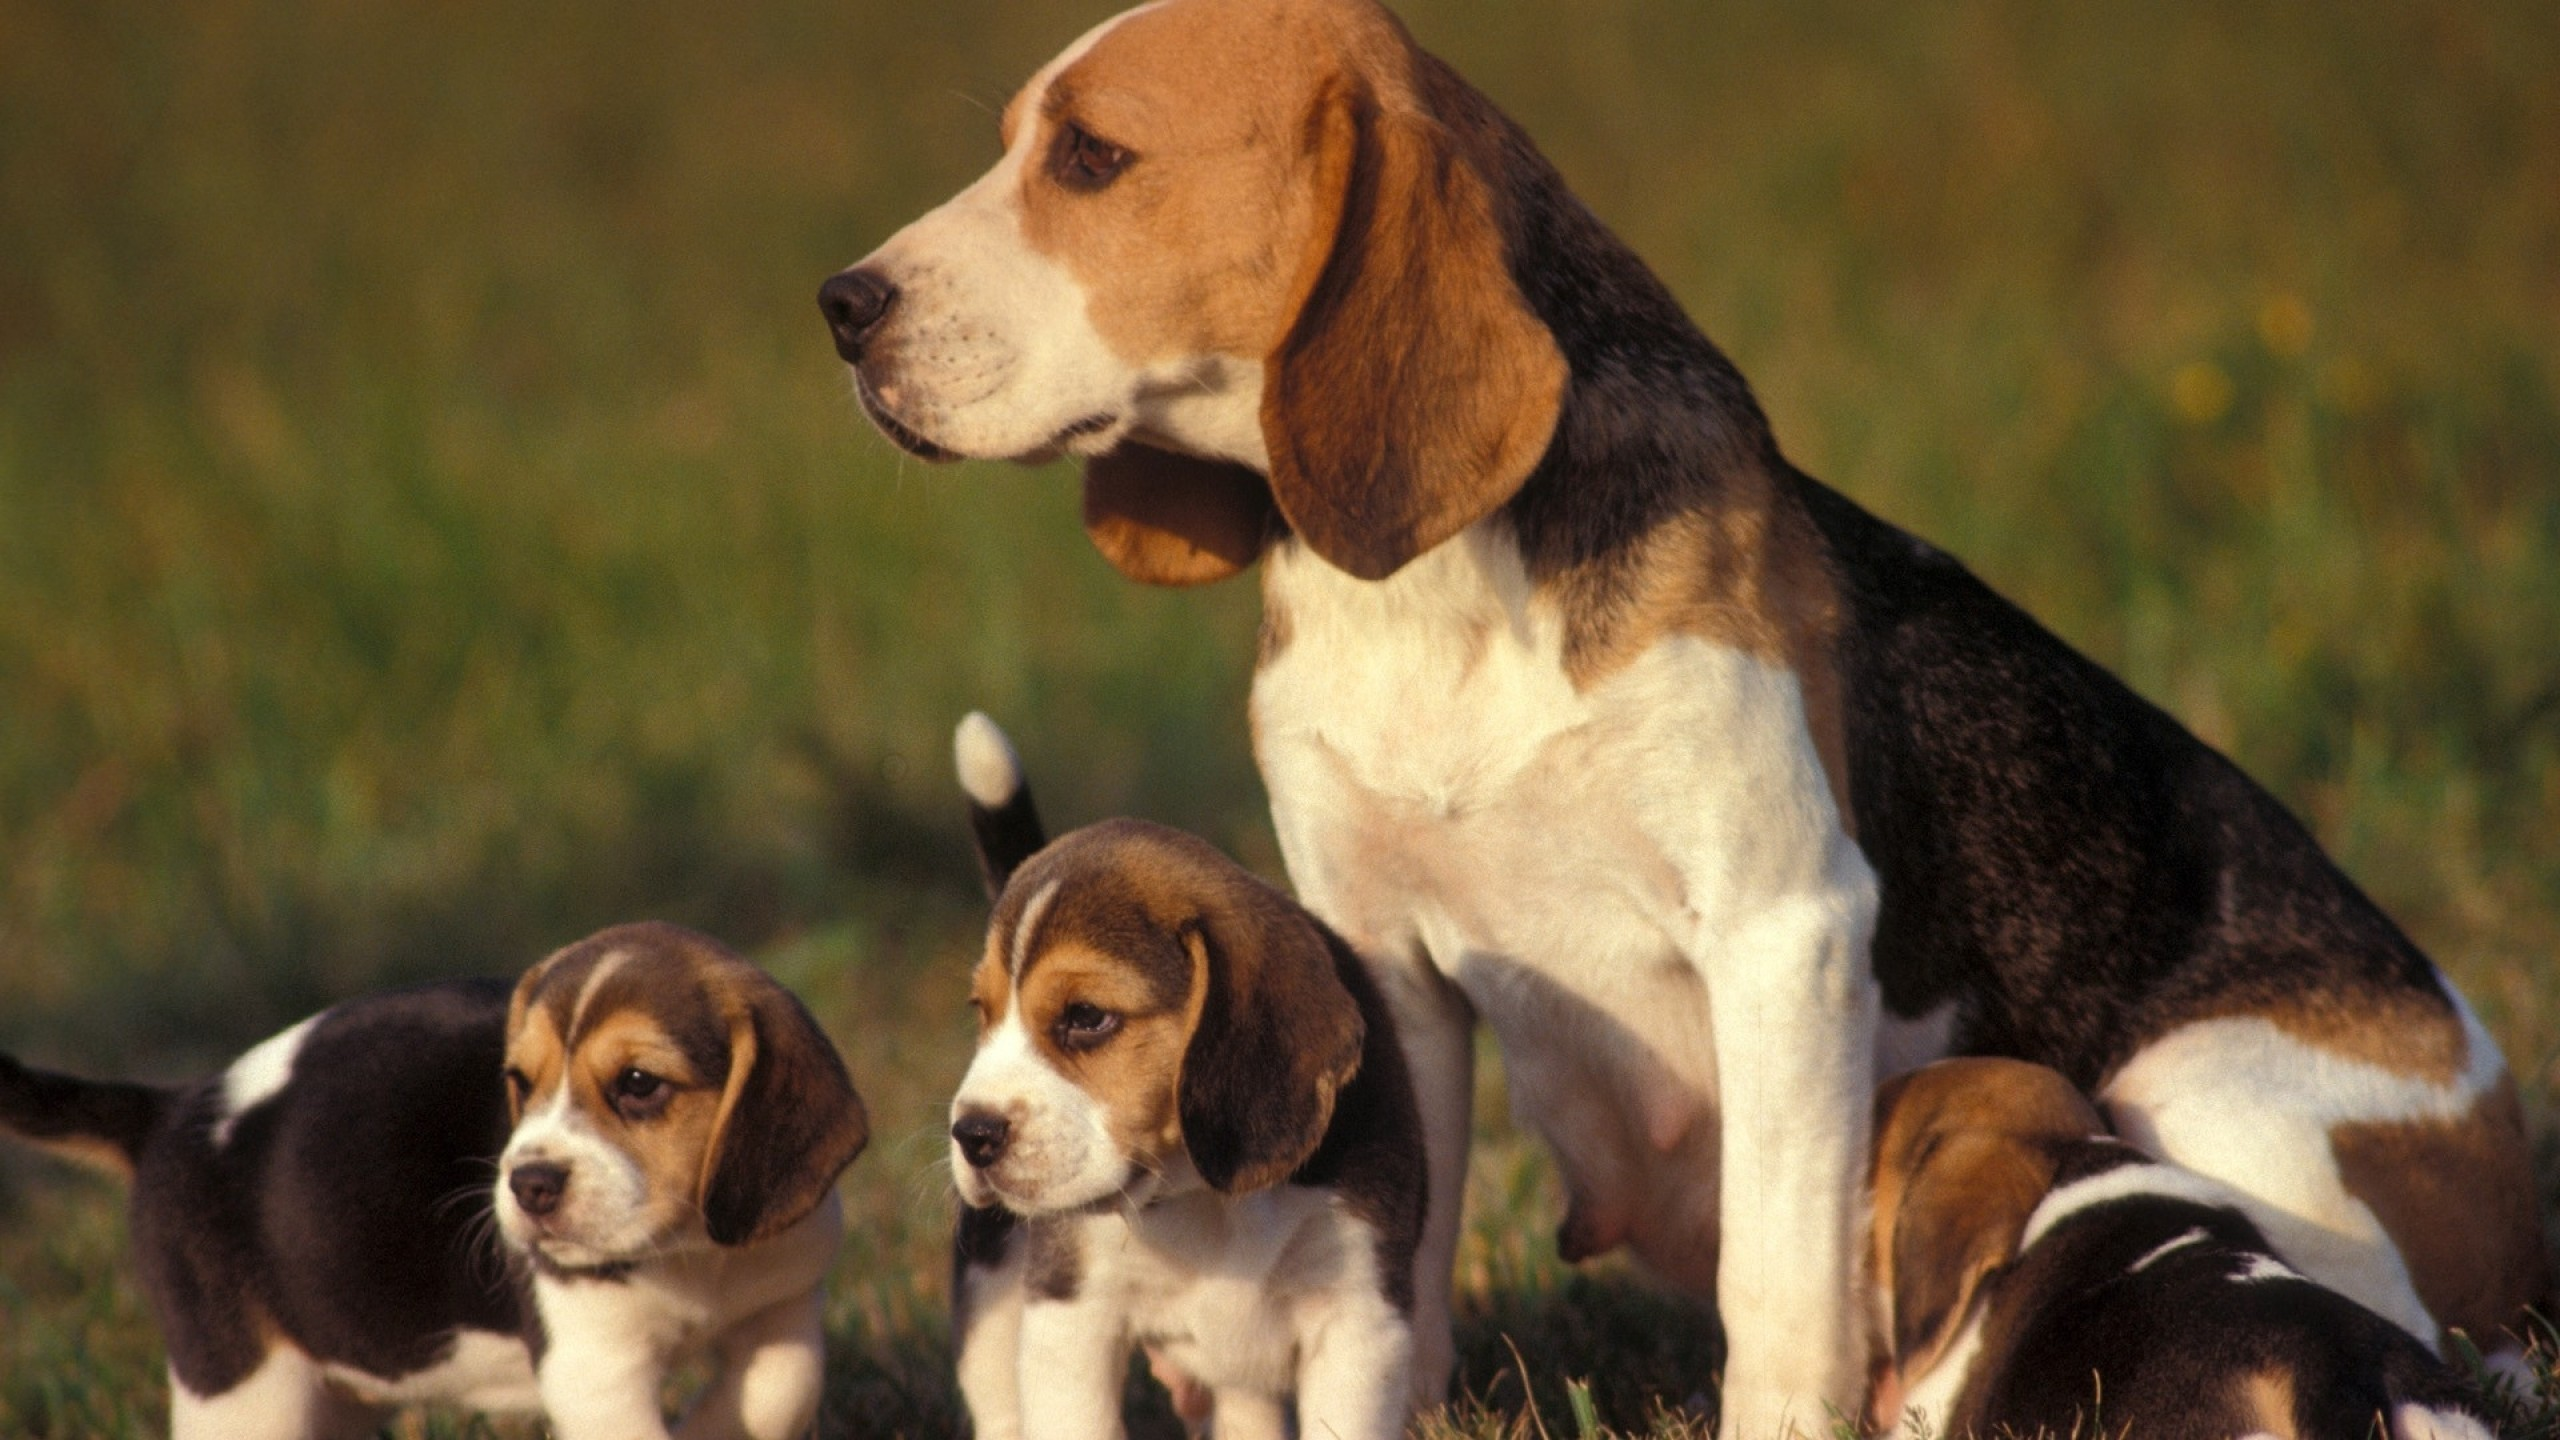 dogs-puppies-beagle-baby-animals-2560x1440-wallpaper